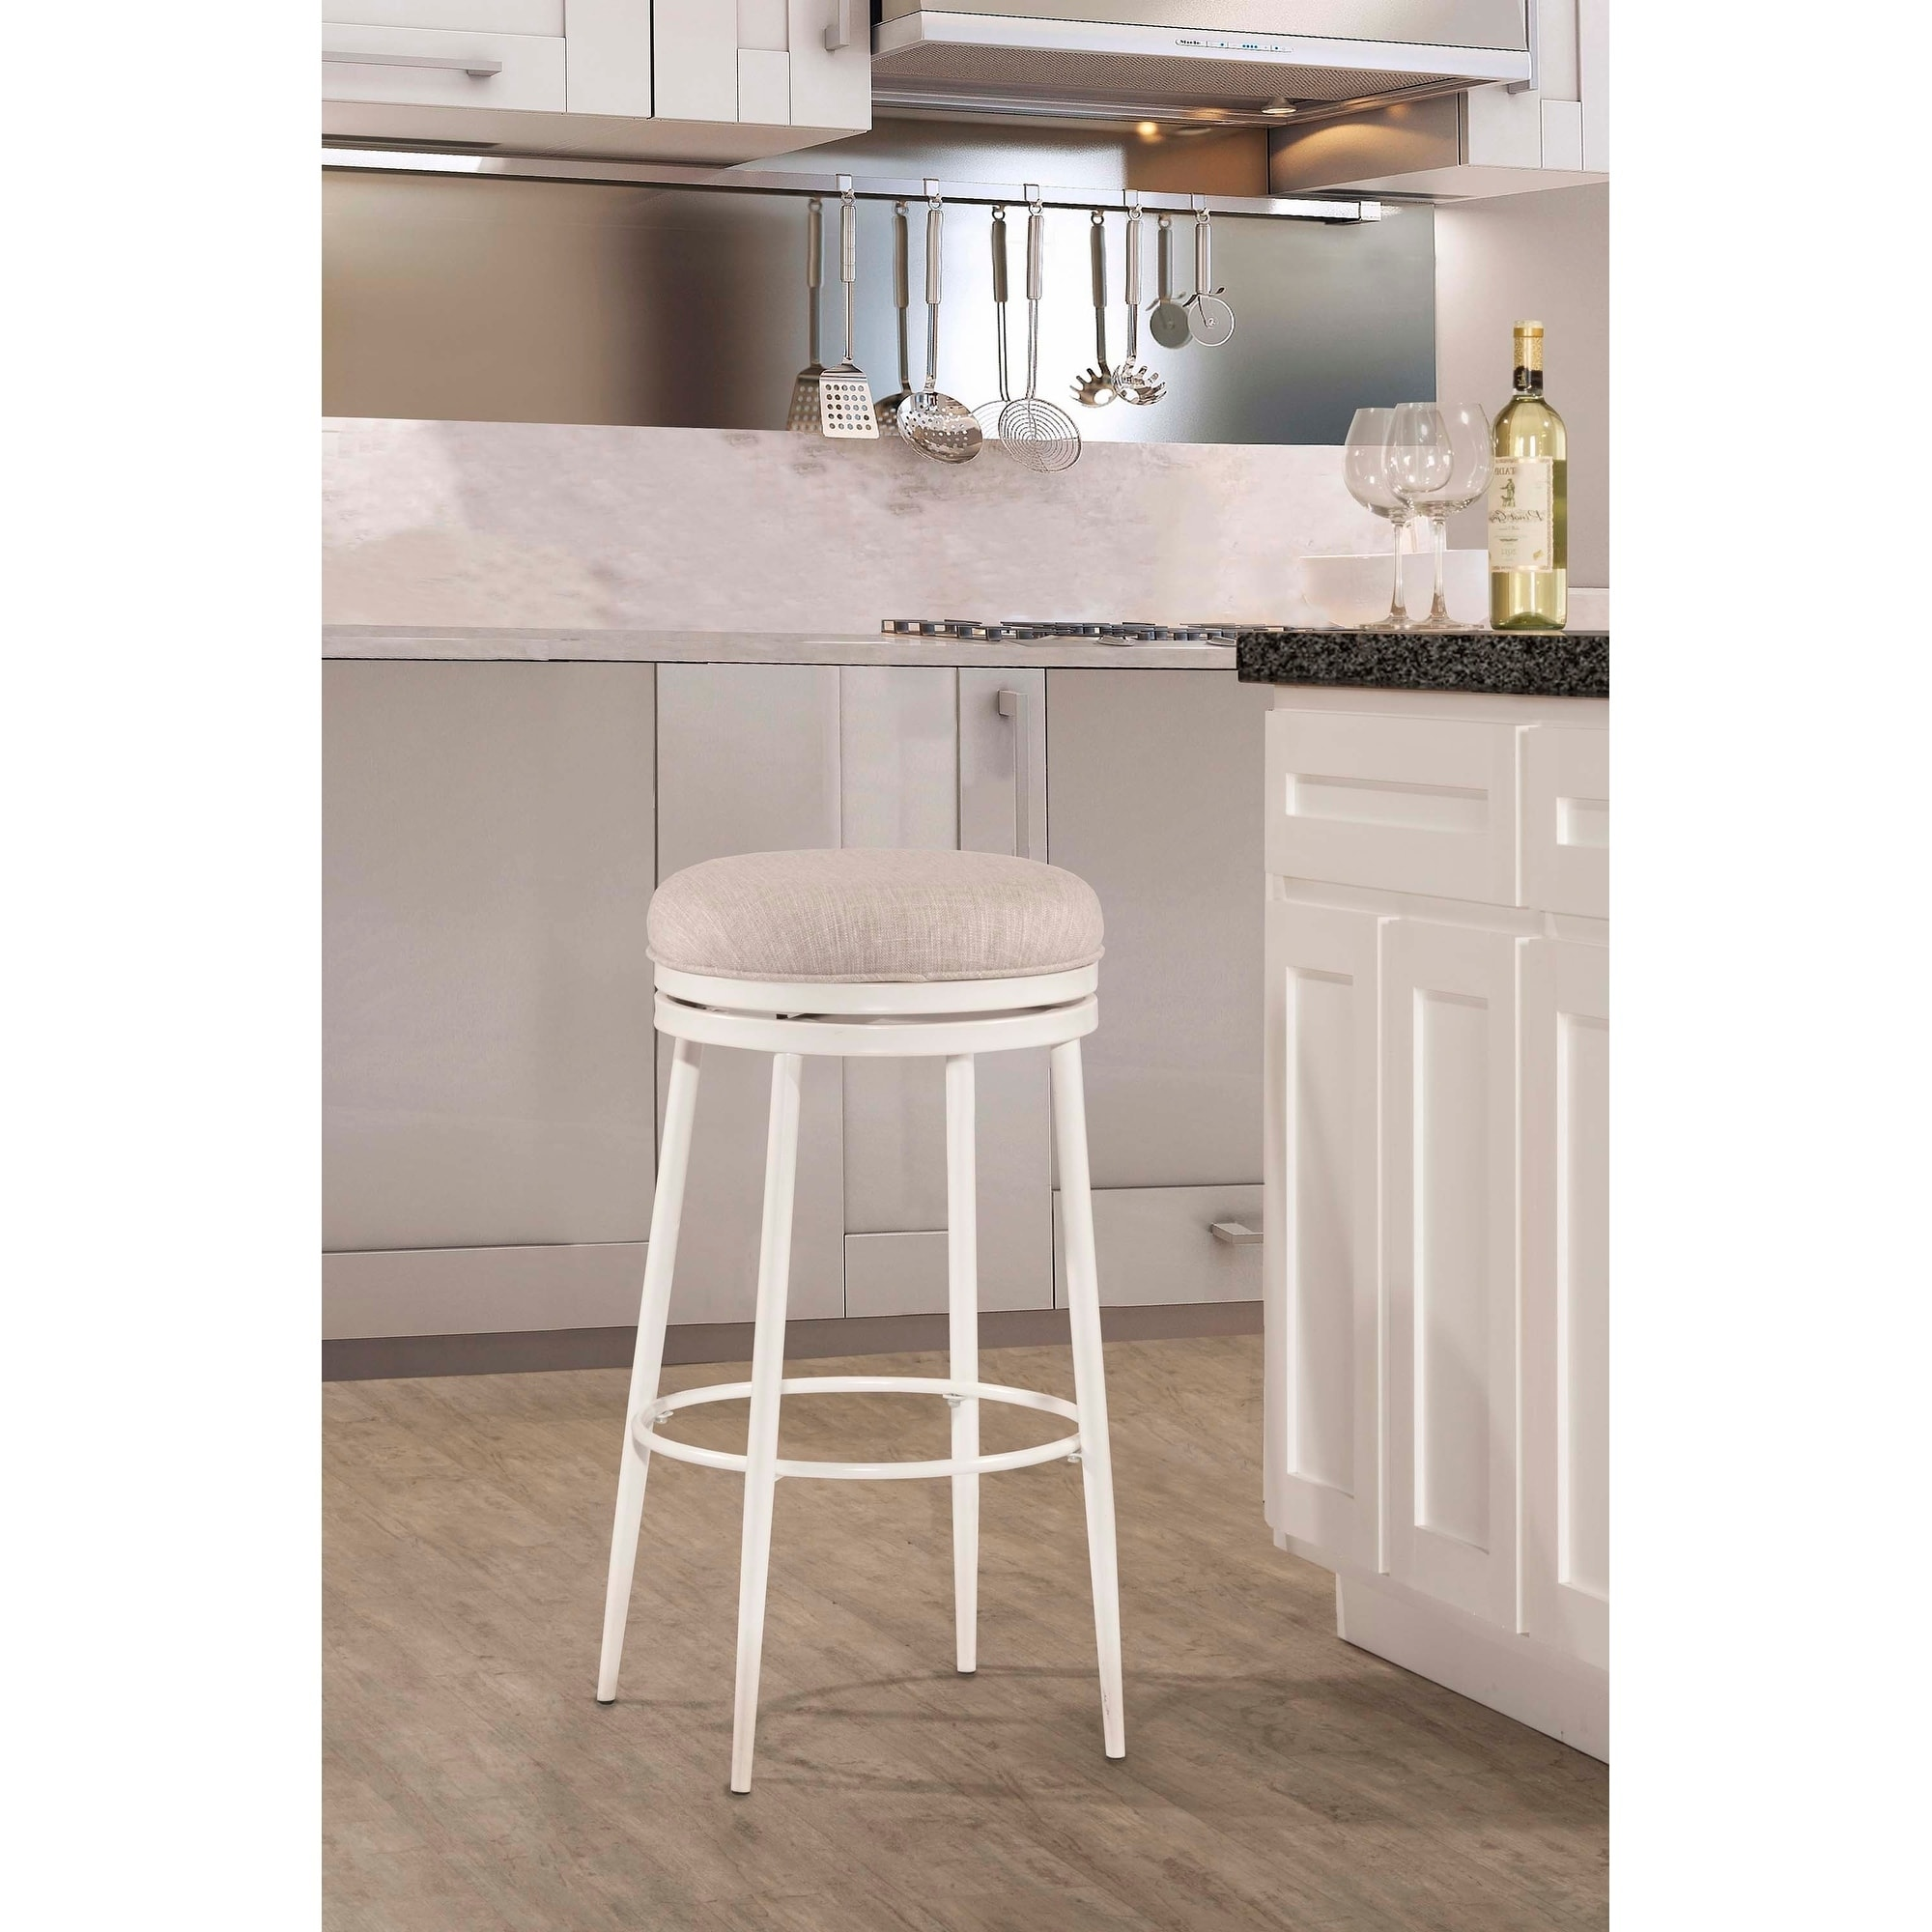 Fabulous Hillsdale Furniture Aubrie Swivel Backless Bar Stool Off White Andrewgaddart Wooden Chair Designs For Living Room Andrewgaddartcom